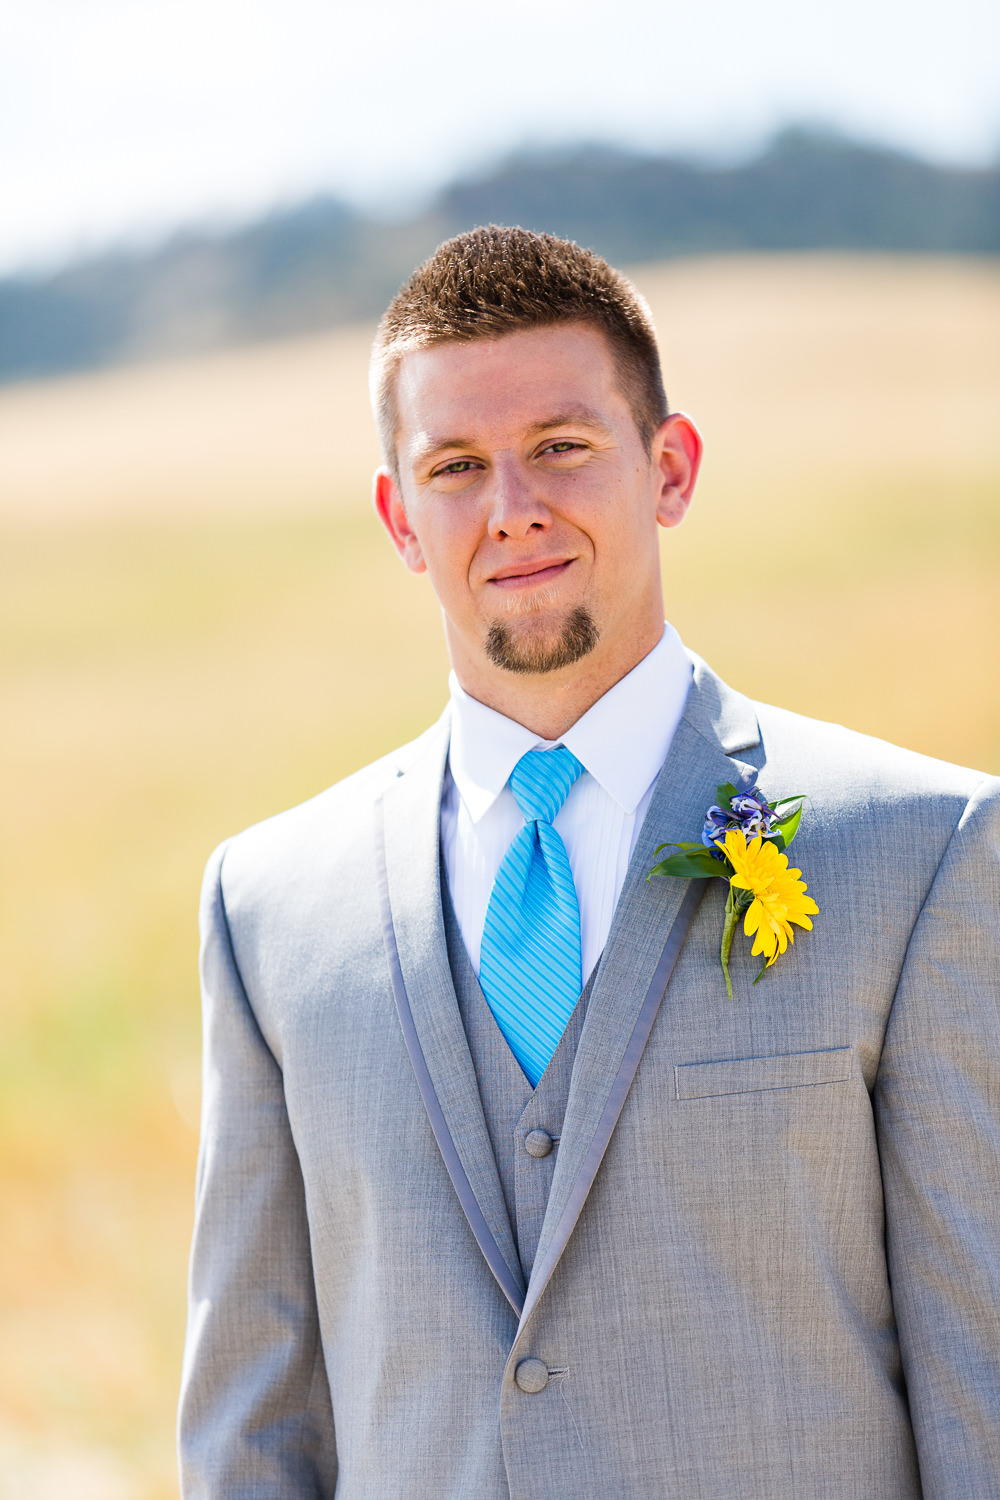 billings-montana-chanceys-wedding-first-look-groom-serious-portrait.jpg